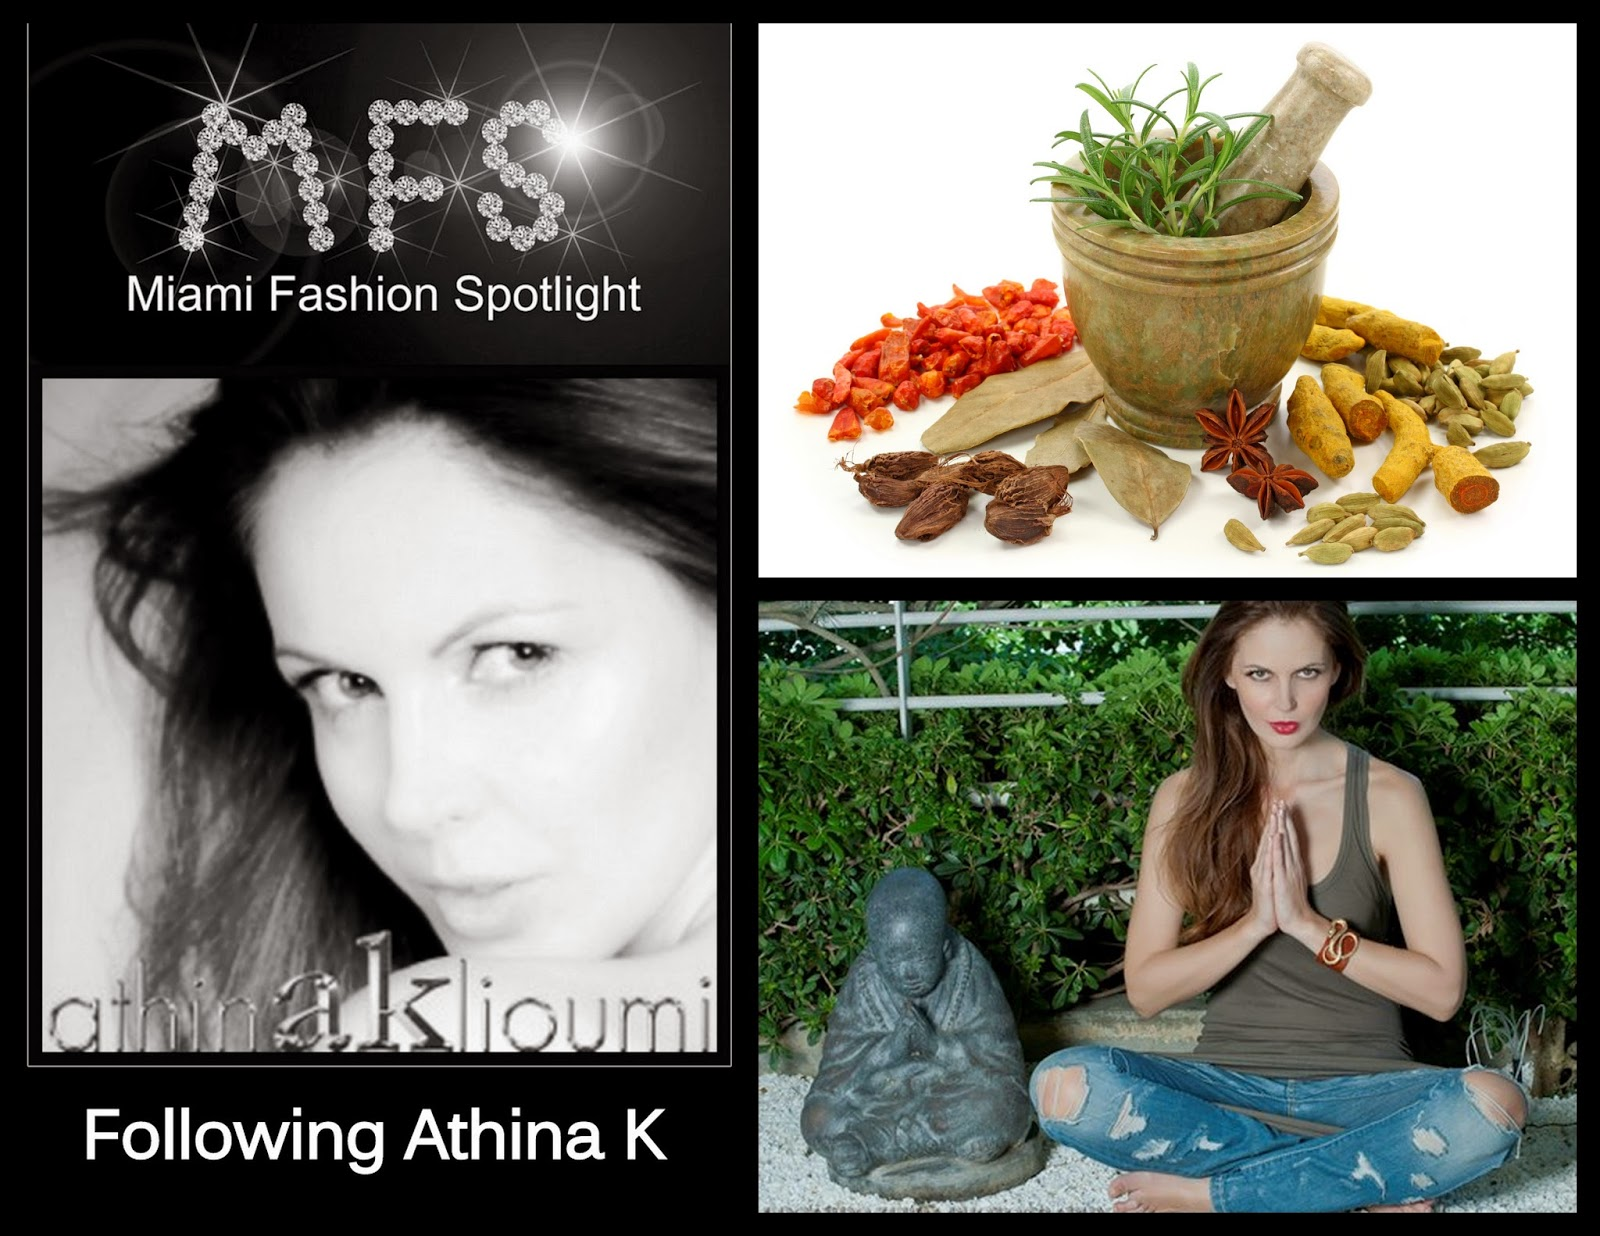 Following Athina K: Home Remedies for Viral Times